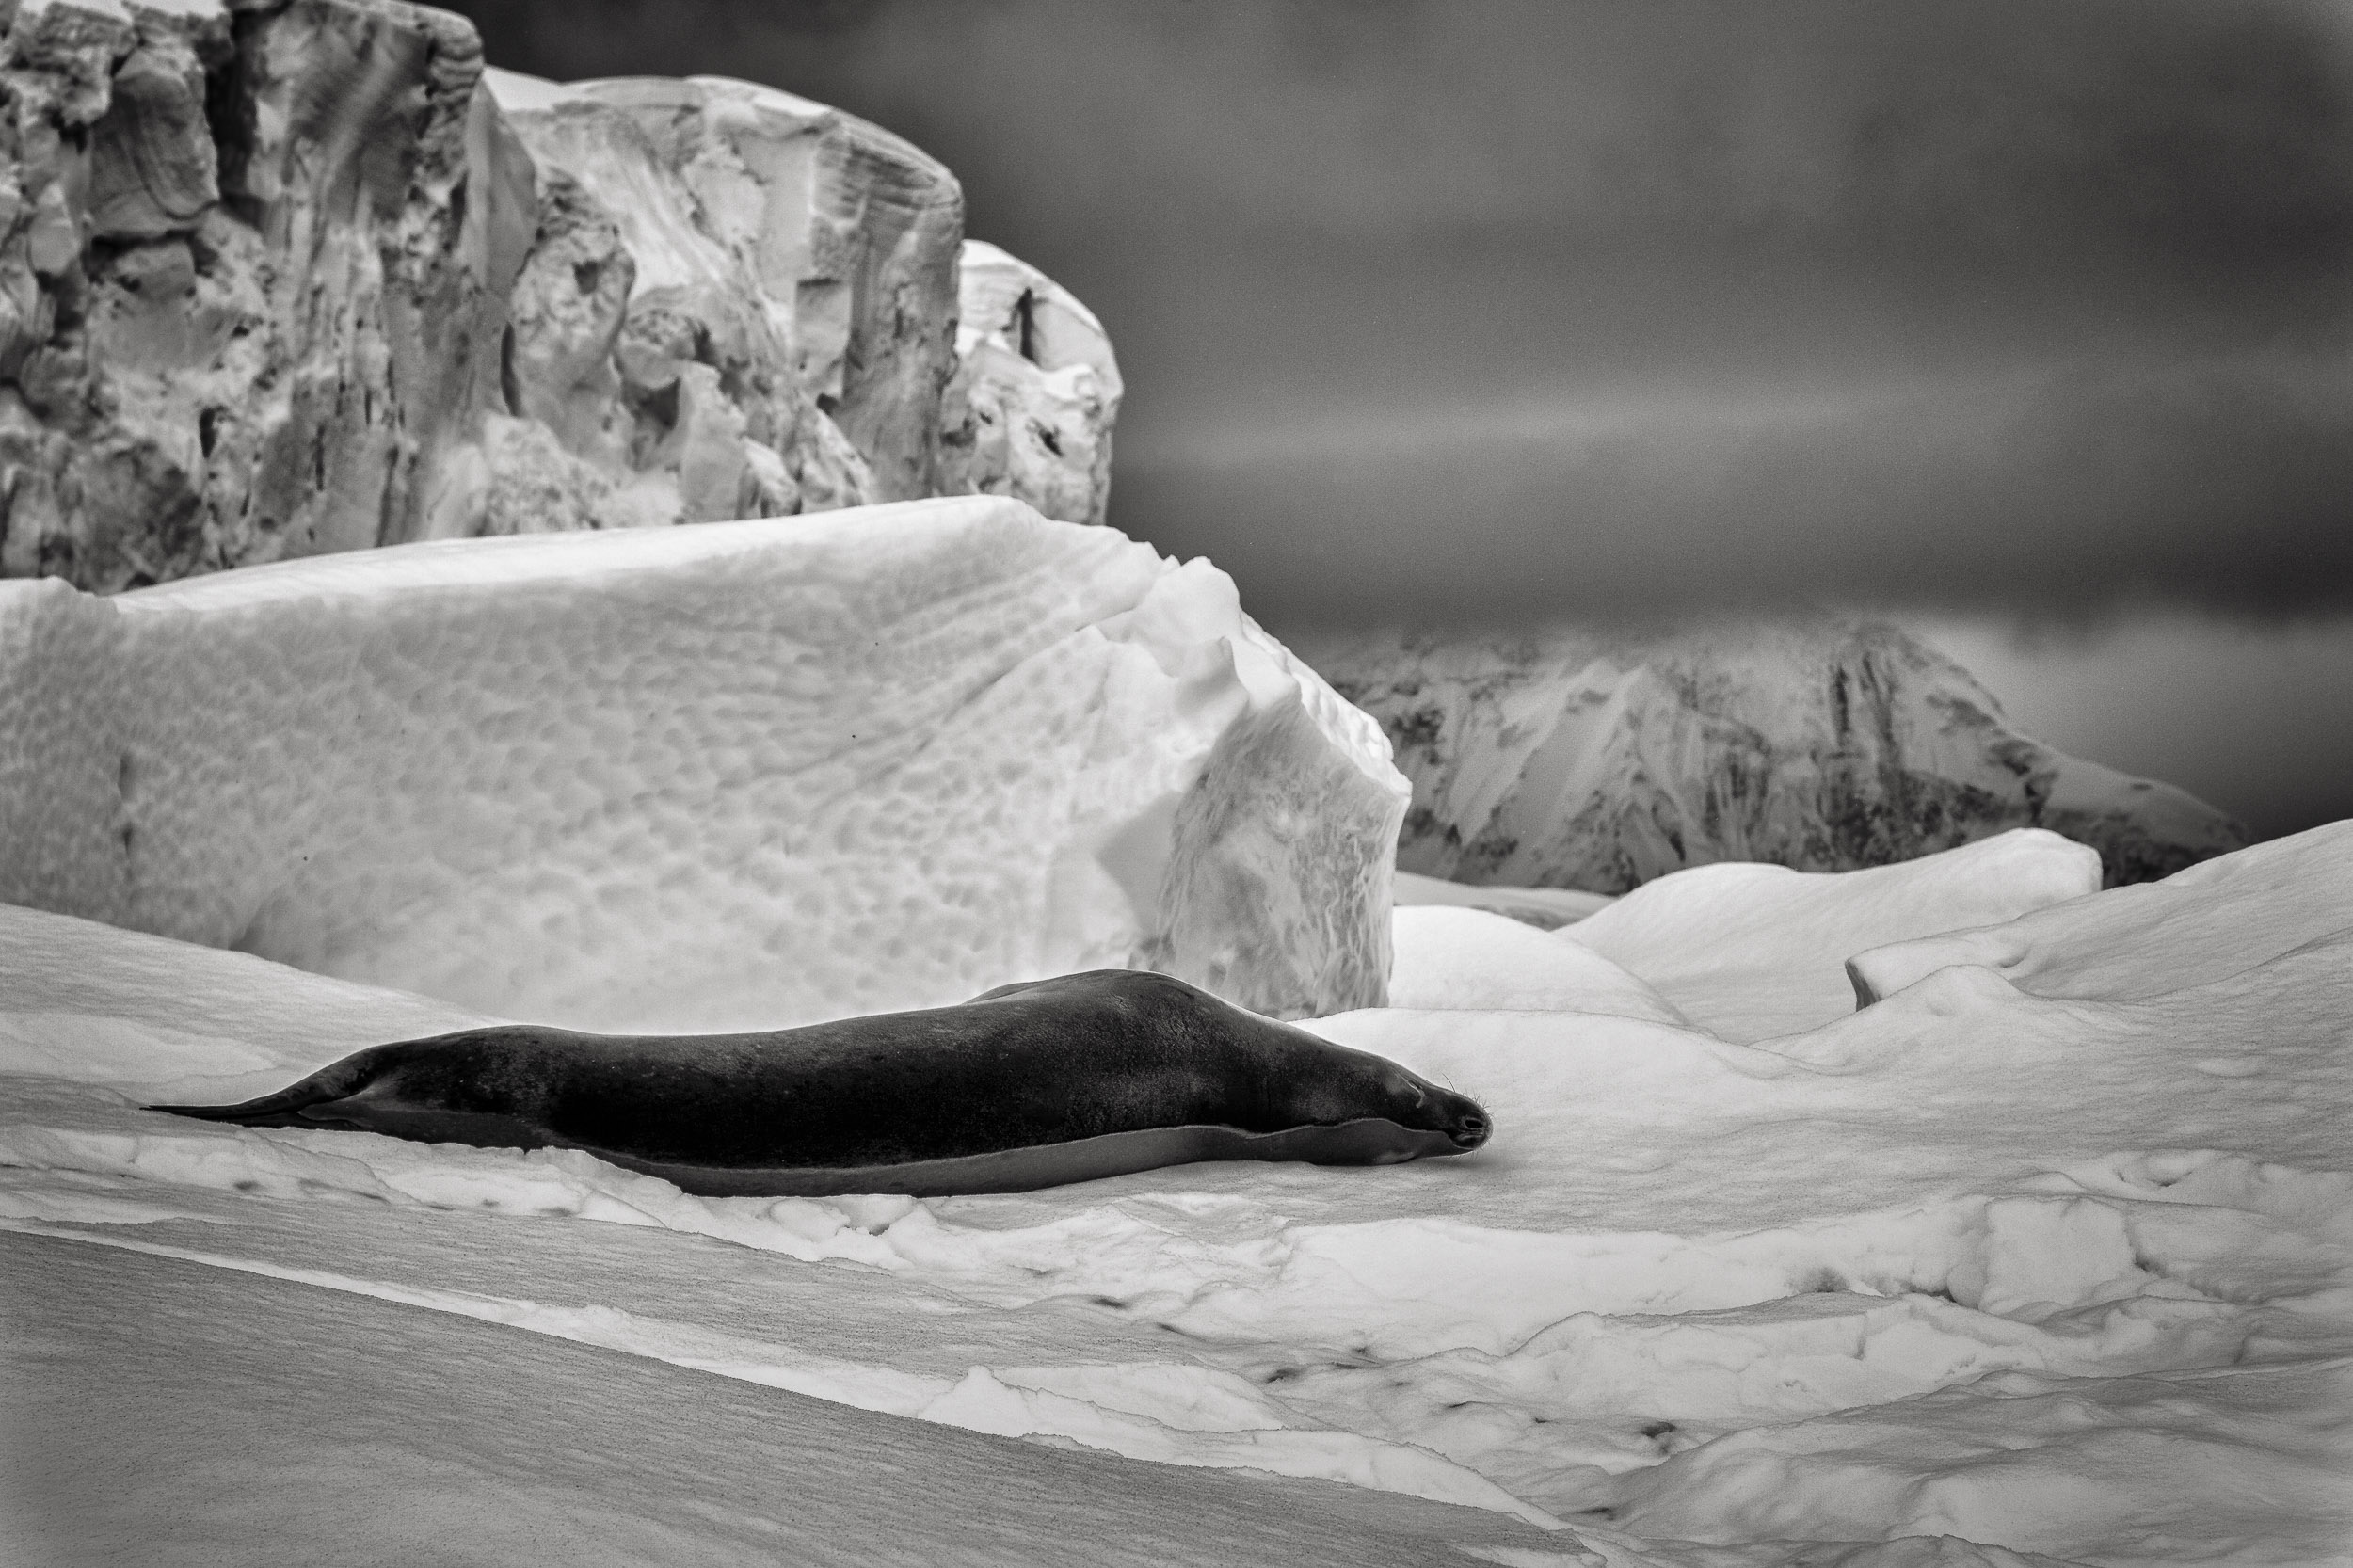 A    leopard seal    relaxes on a large ice sheet just off the coast of    Cuverville Island    in    Antarctica   .